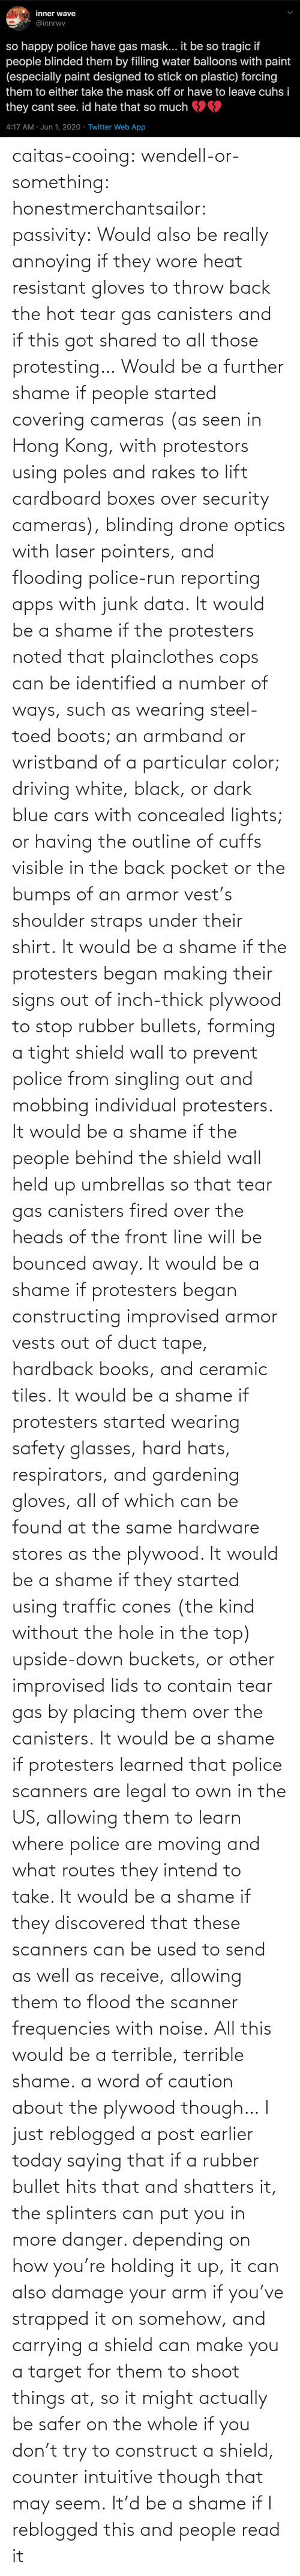 Without: caitas-cooing:  wendell-or-something: honestmerchantsailor:  passivity: Would also be really annoying if they wore heat resistant gloves to throw back the hot tear gas canisters and if this got shared to all those protesting… Would be a further shame if people started covering cameras (as seen in Hong Kong, with protestors using poles and rakes to lift cardboard boxes over security cameras), blinding drone optics with laser pointers, and flooding police-run reporting apps with junk data. It would be a shame if the protesters noted that plainclothes cops can be identified a number of ways, such as wearing steel-toed boots; an armband or wristband of a particular color; driving white, black, or dark blue cars with concealed lights; or having the outline of cuffs visible in the back pocket or the bumps of an armor vest's shoulder straps under their shirt. It would be a shame if the protesters began making their signs out of inch-thick plywood to stop rubber bullets, forming a tight shield wall to prevent police from singling out and mobbing individual protesters. It would be a shame if the people behind the shield wall held up umbrellas so that tear gas canisters fired over the heads of the front line will be bounced away. It would be a shame if protesters began constructing improvised armor vests out of duct tape, hardback books, and ceramic tiles. It would be a shame if protesters started wearing safety glasses, hard hats, respirators, and gardening gloves, all of which can be found at the same hardware stores as the plywood. It would be a shame if they started using traffic cones (the kind without the hole in the top) upside-down buckets, or other improvised lids to contain tear gas by placing them over the canisters. It would be a shame if protesters learned that police scanners are legal to own in the US, allowing them to learn where police are moving and what routes they intend to take. It would be a shame if they discovered that these scanners can be used to send as well as receive, allowing them to flood the scanner frequencies with noise. All this would be a terrible, terrible shame.    a word of caution about the plywood though… I just reblogged a post earlier today saying that if a rubber bullet hits that and shatters it, the splinters can put you in more danger. depending on how you're holding it up, it can also damage your arm if you've strapped it on somehow, and carrying a shield can make you a target for them to shoot things at, so it might actually be safer on the whole if you don't try to construct a shield, counter intuitive though that may seem.    It'd be a shame if I reblogged this and people read it